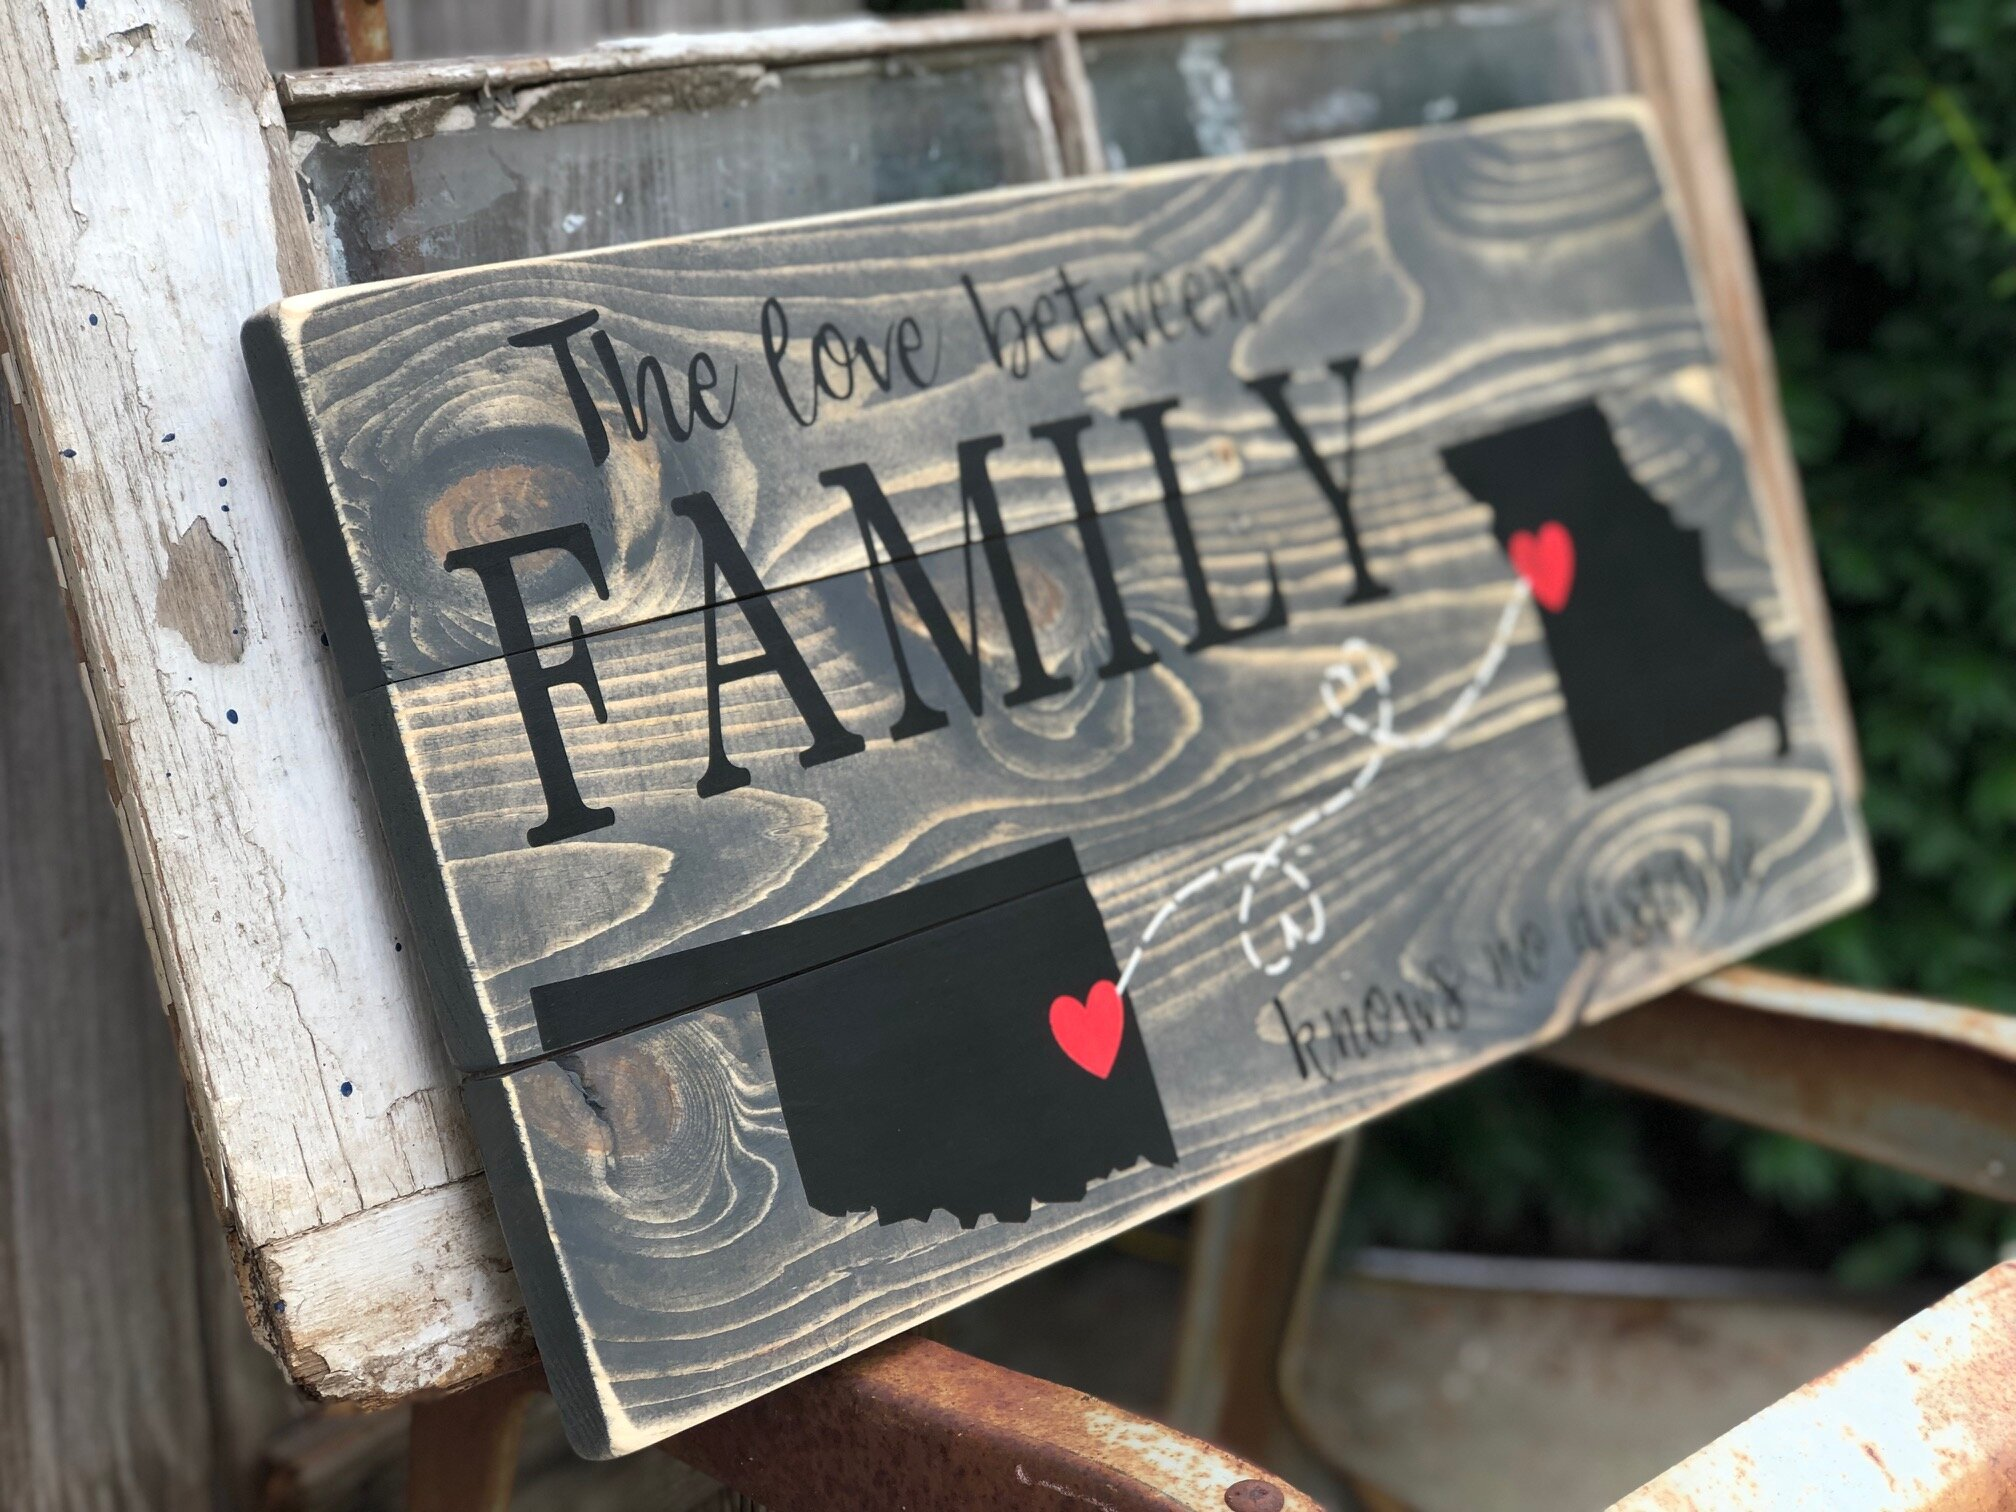 How to build a pallet style sign from new wood. Make your own pallet sign. Build a rustic style pallet sign.